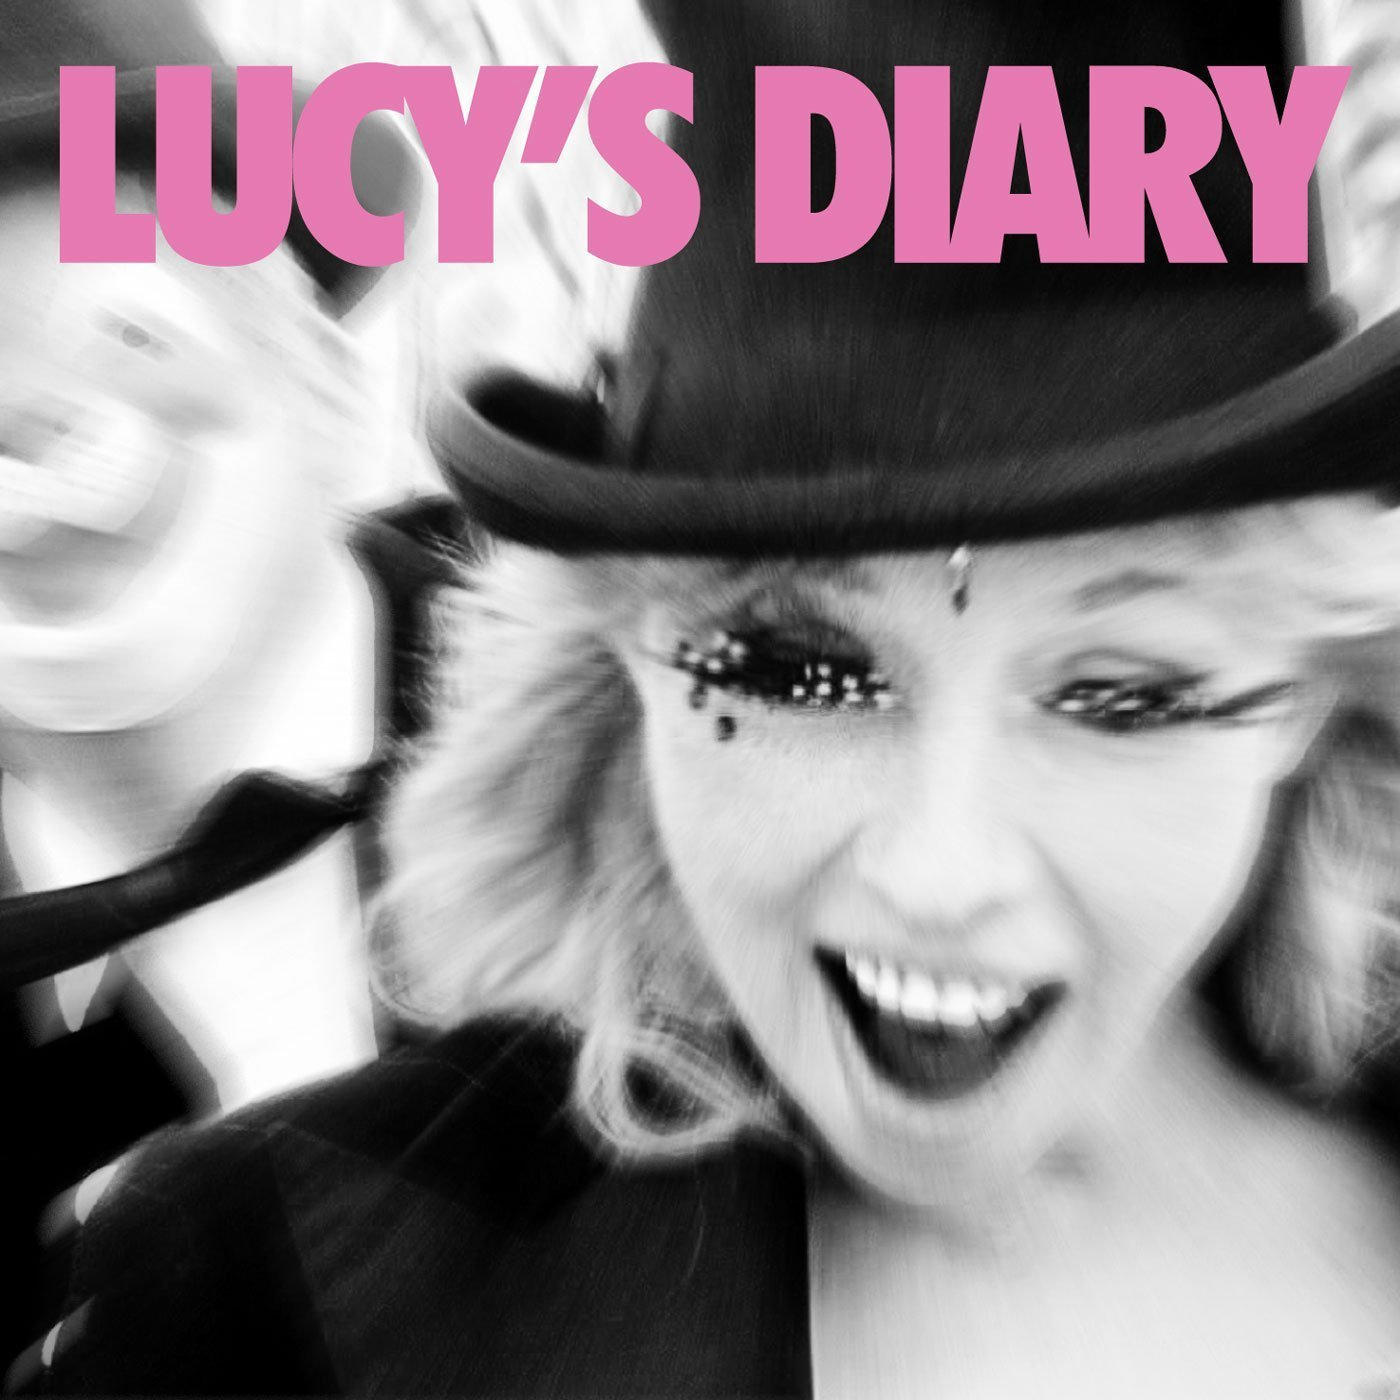 Lucy's Diary - Lucy's Diary